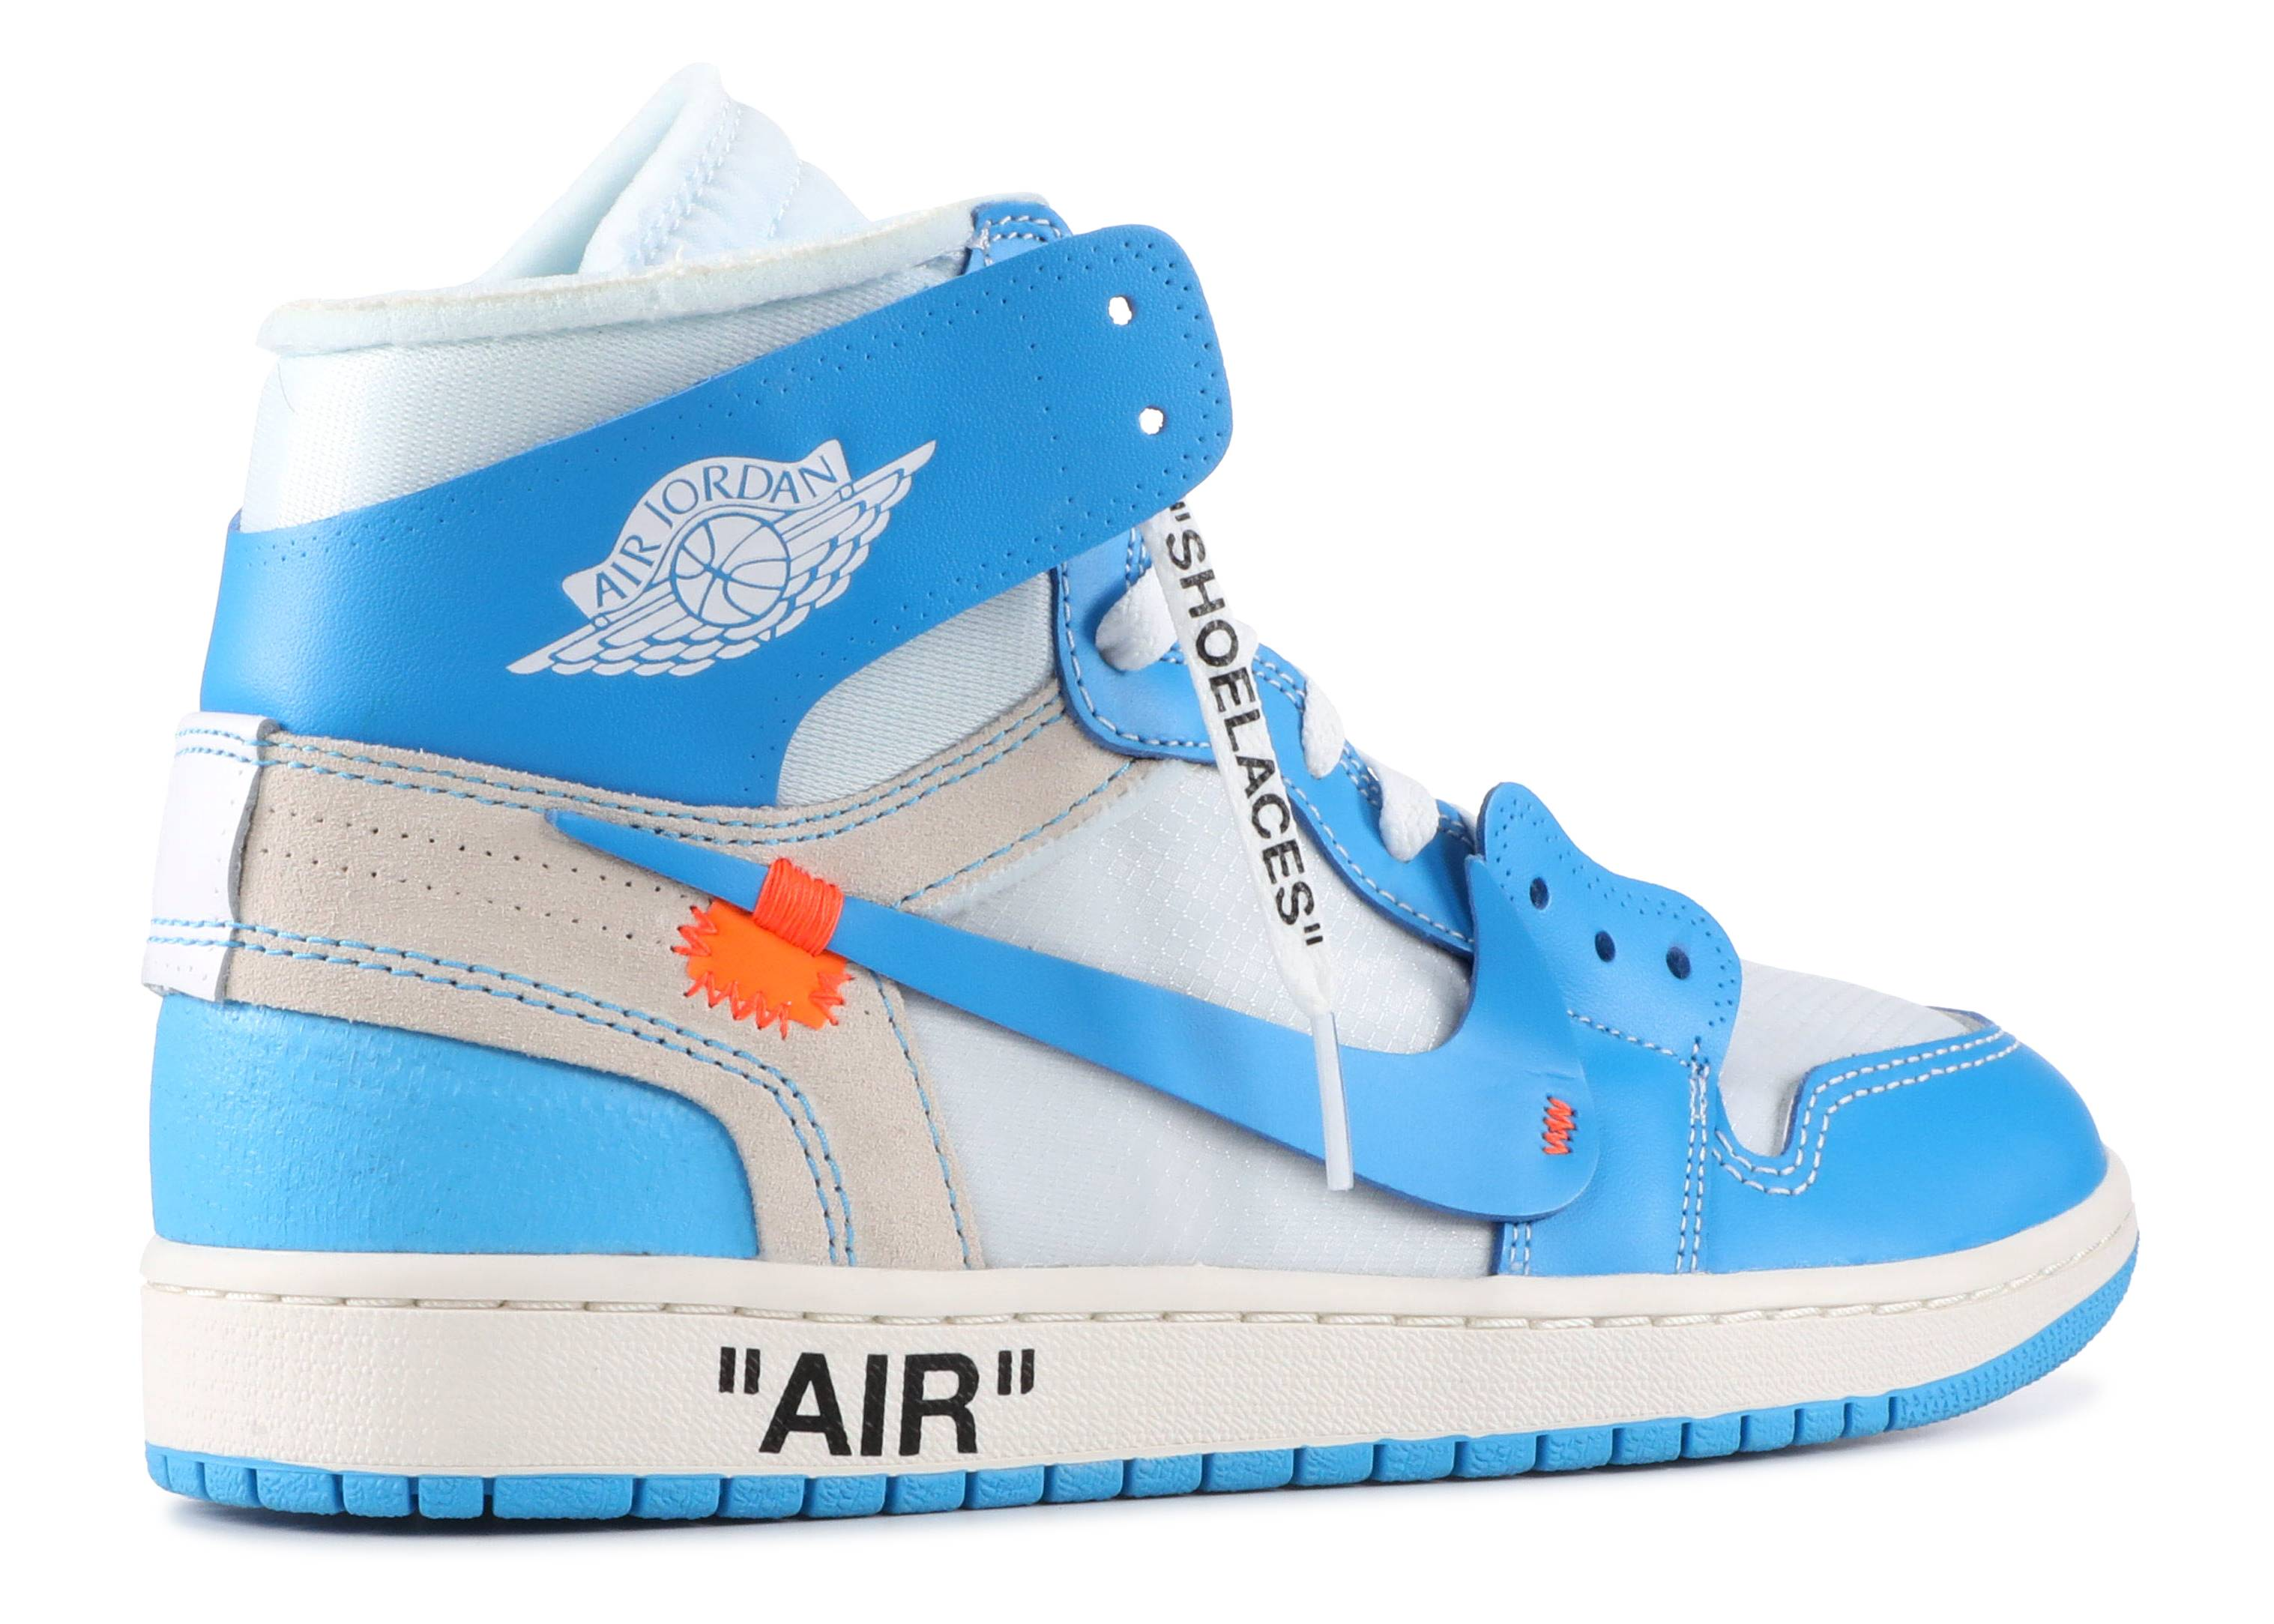 air jordan 1 off white bleu